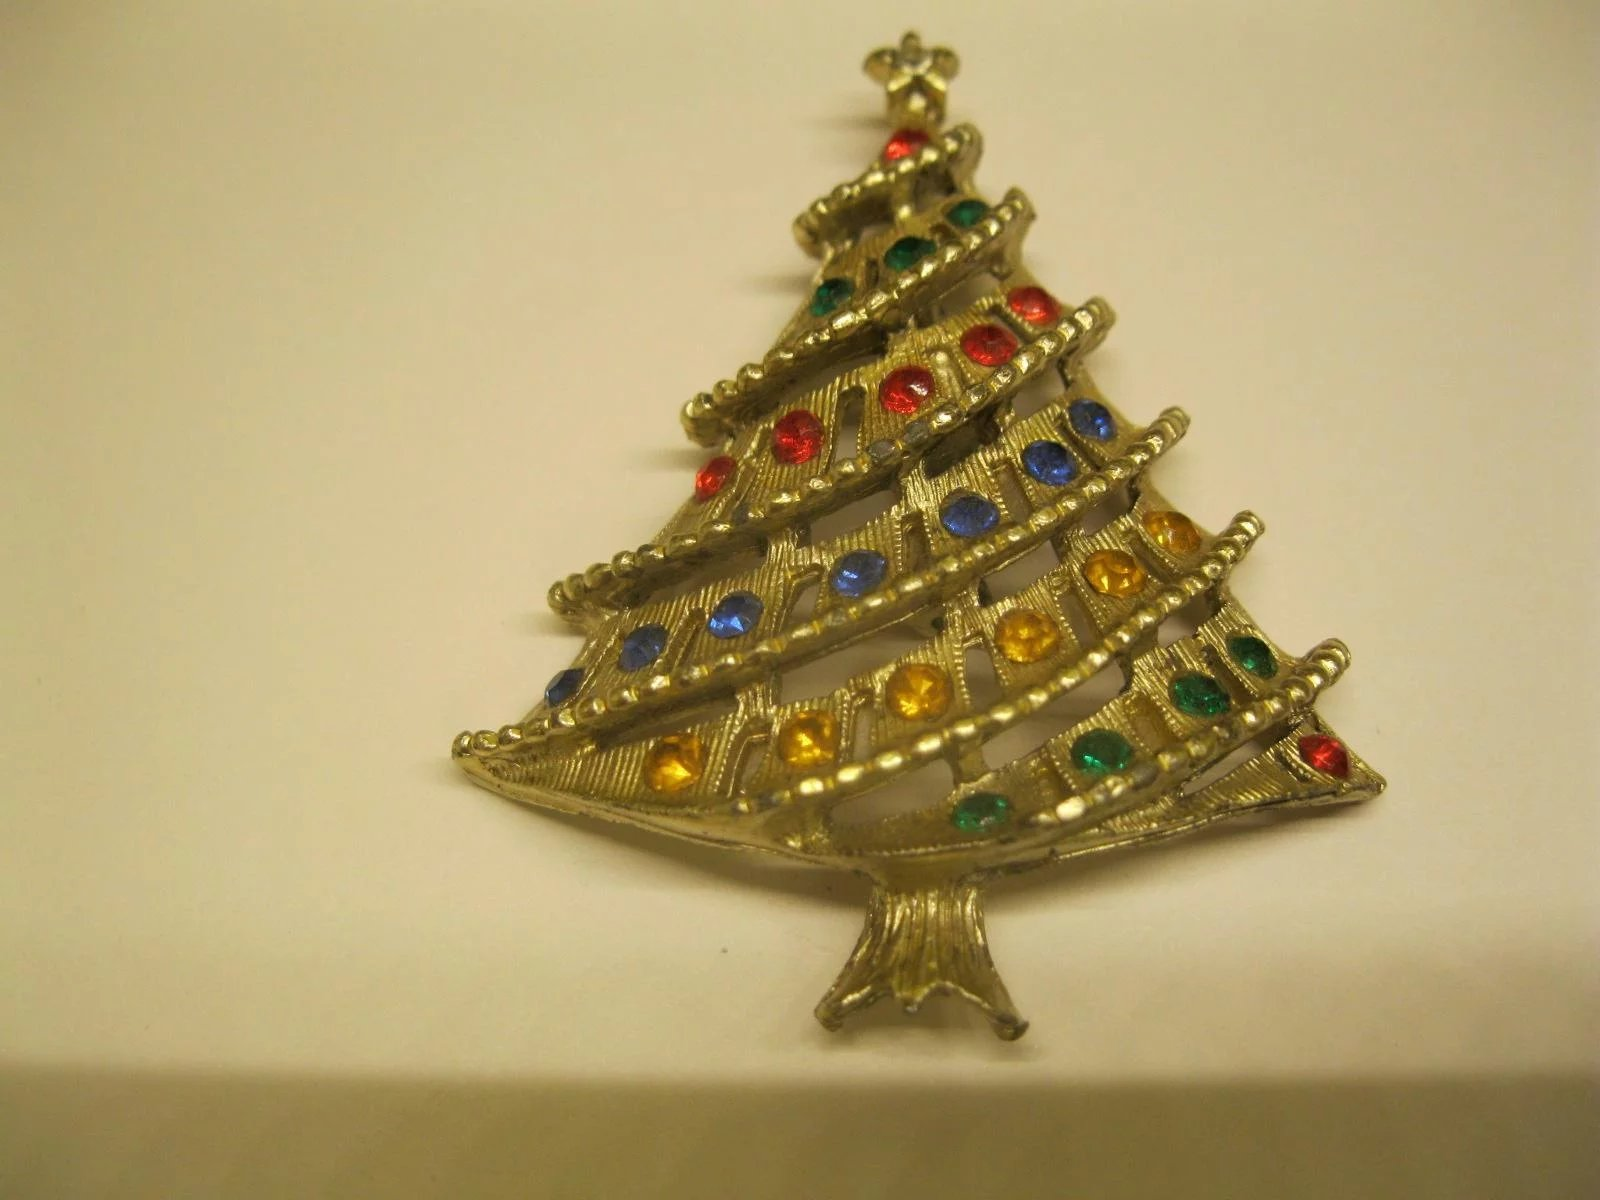 Vintage Unsigned Tiered Jeweled Christmas Tree Pin Broach : The ...